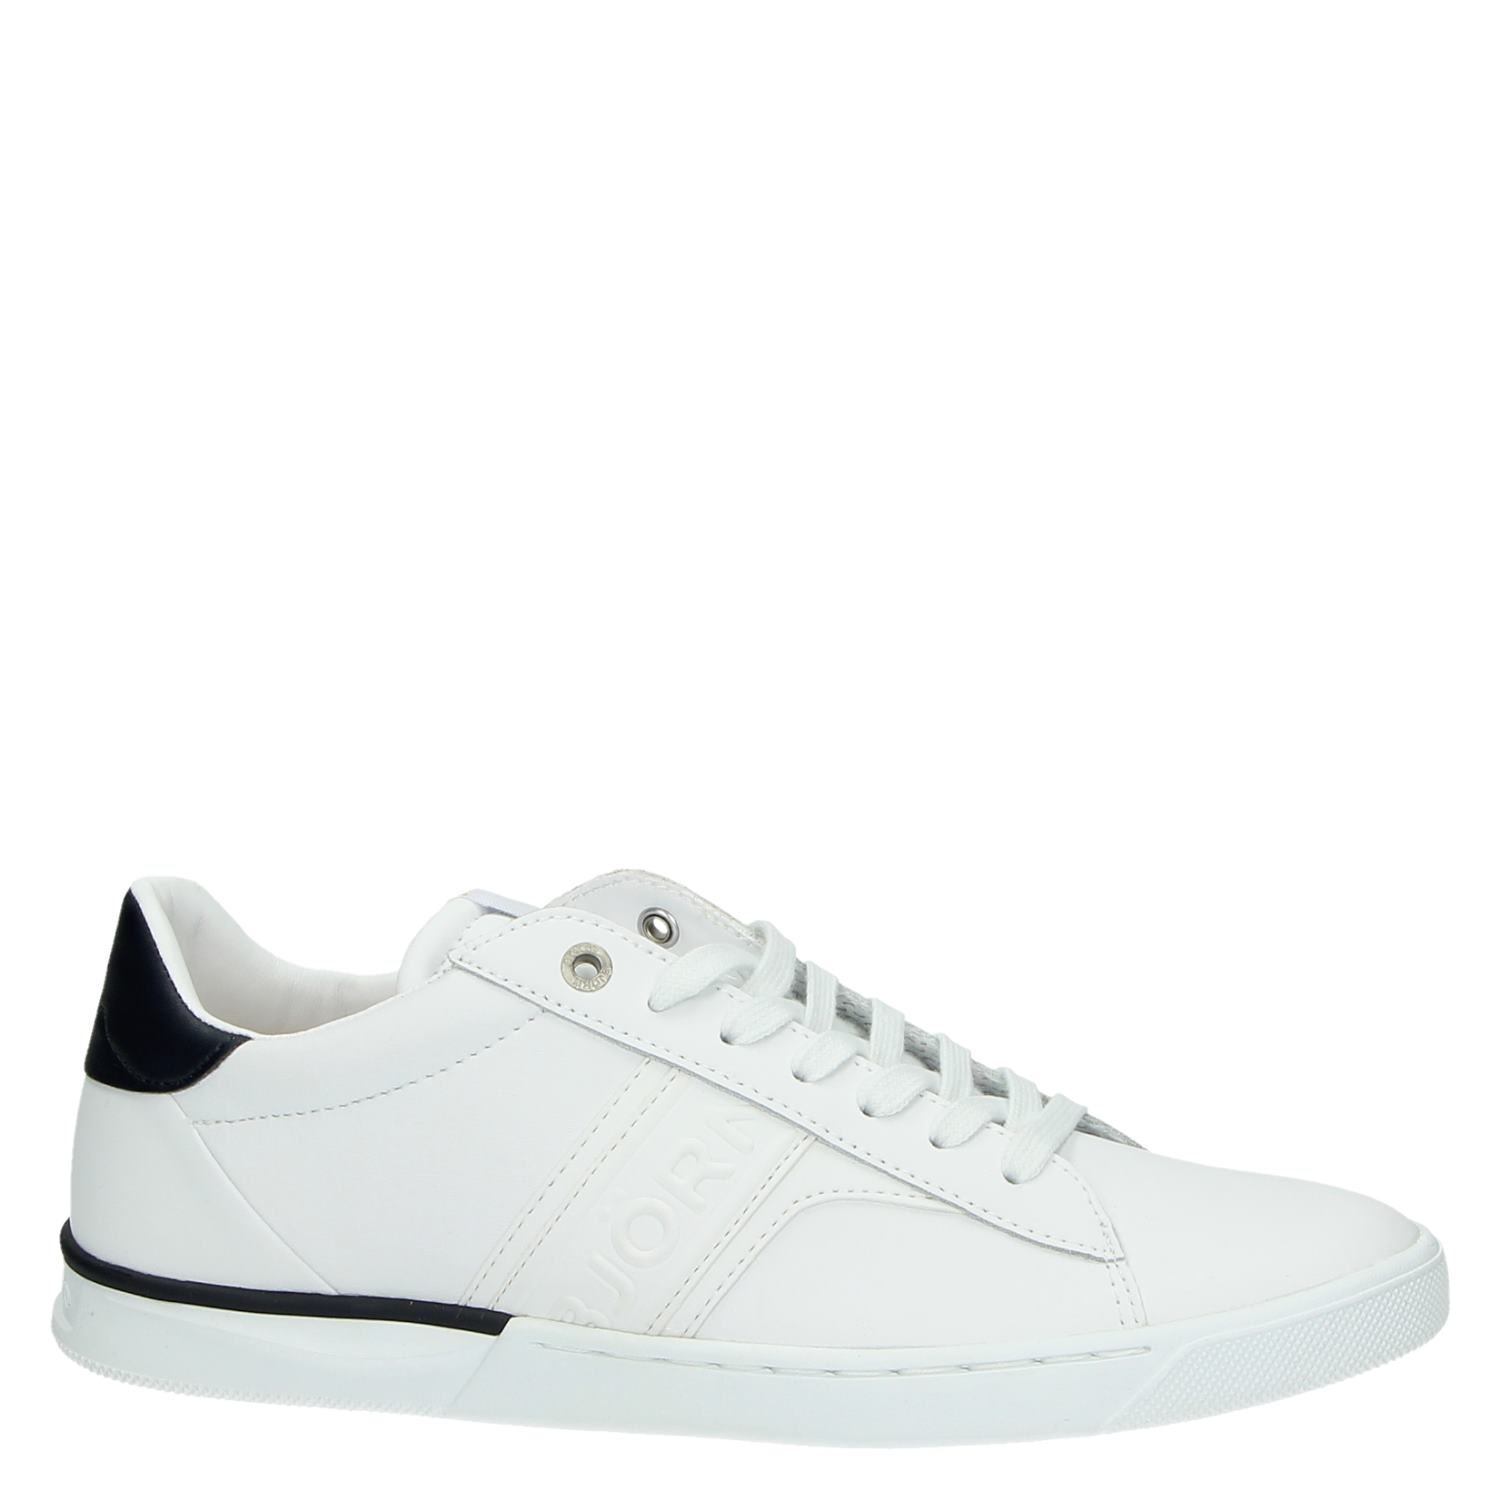 Witte Gympen Bjorn Borg Heren Lage Sneakers Wit